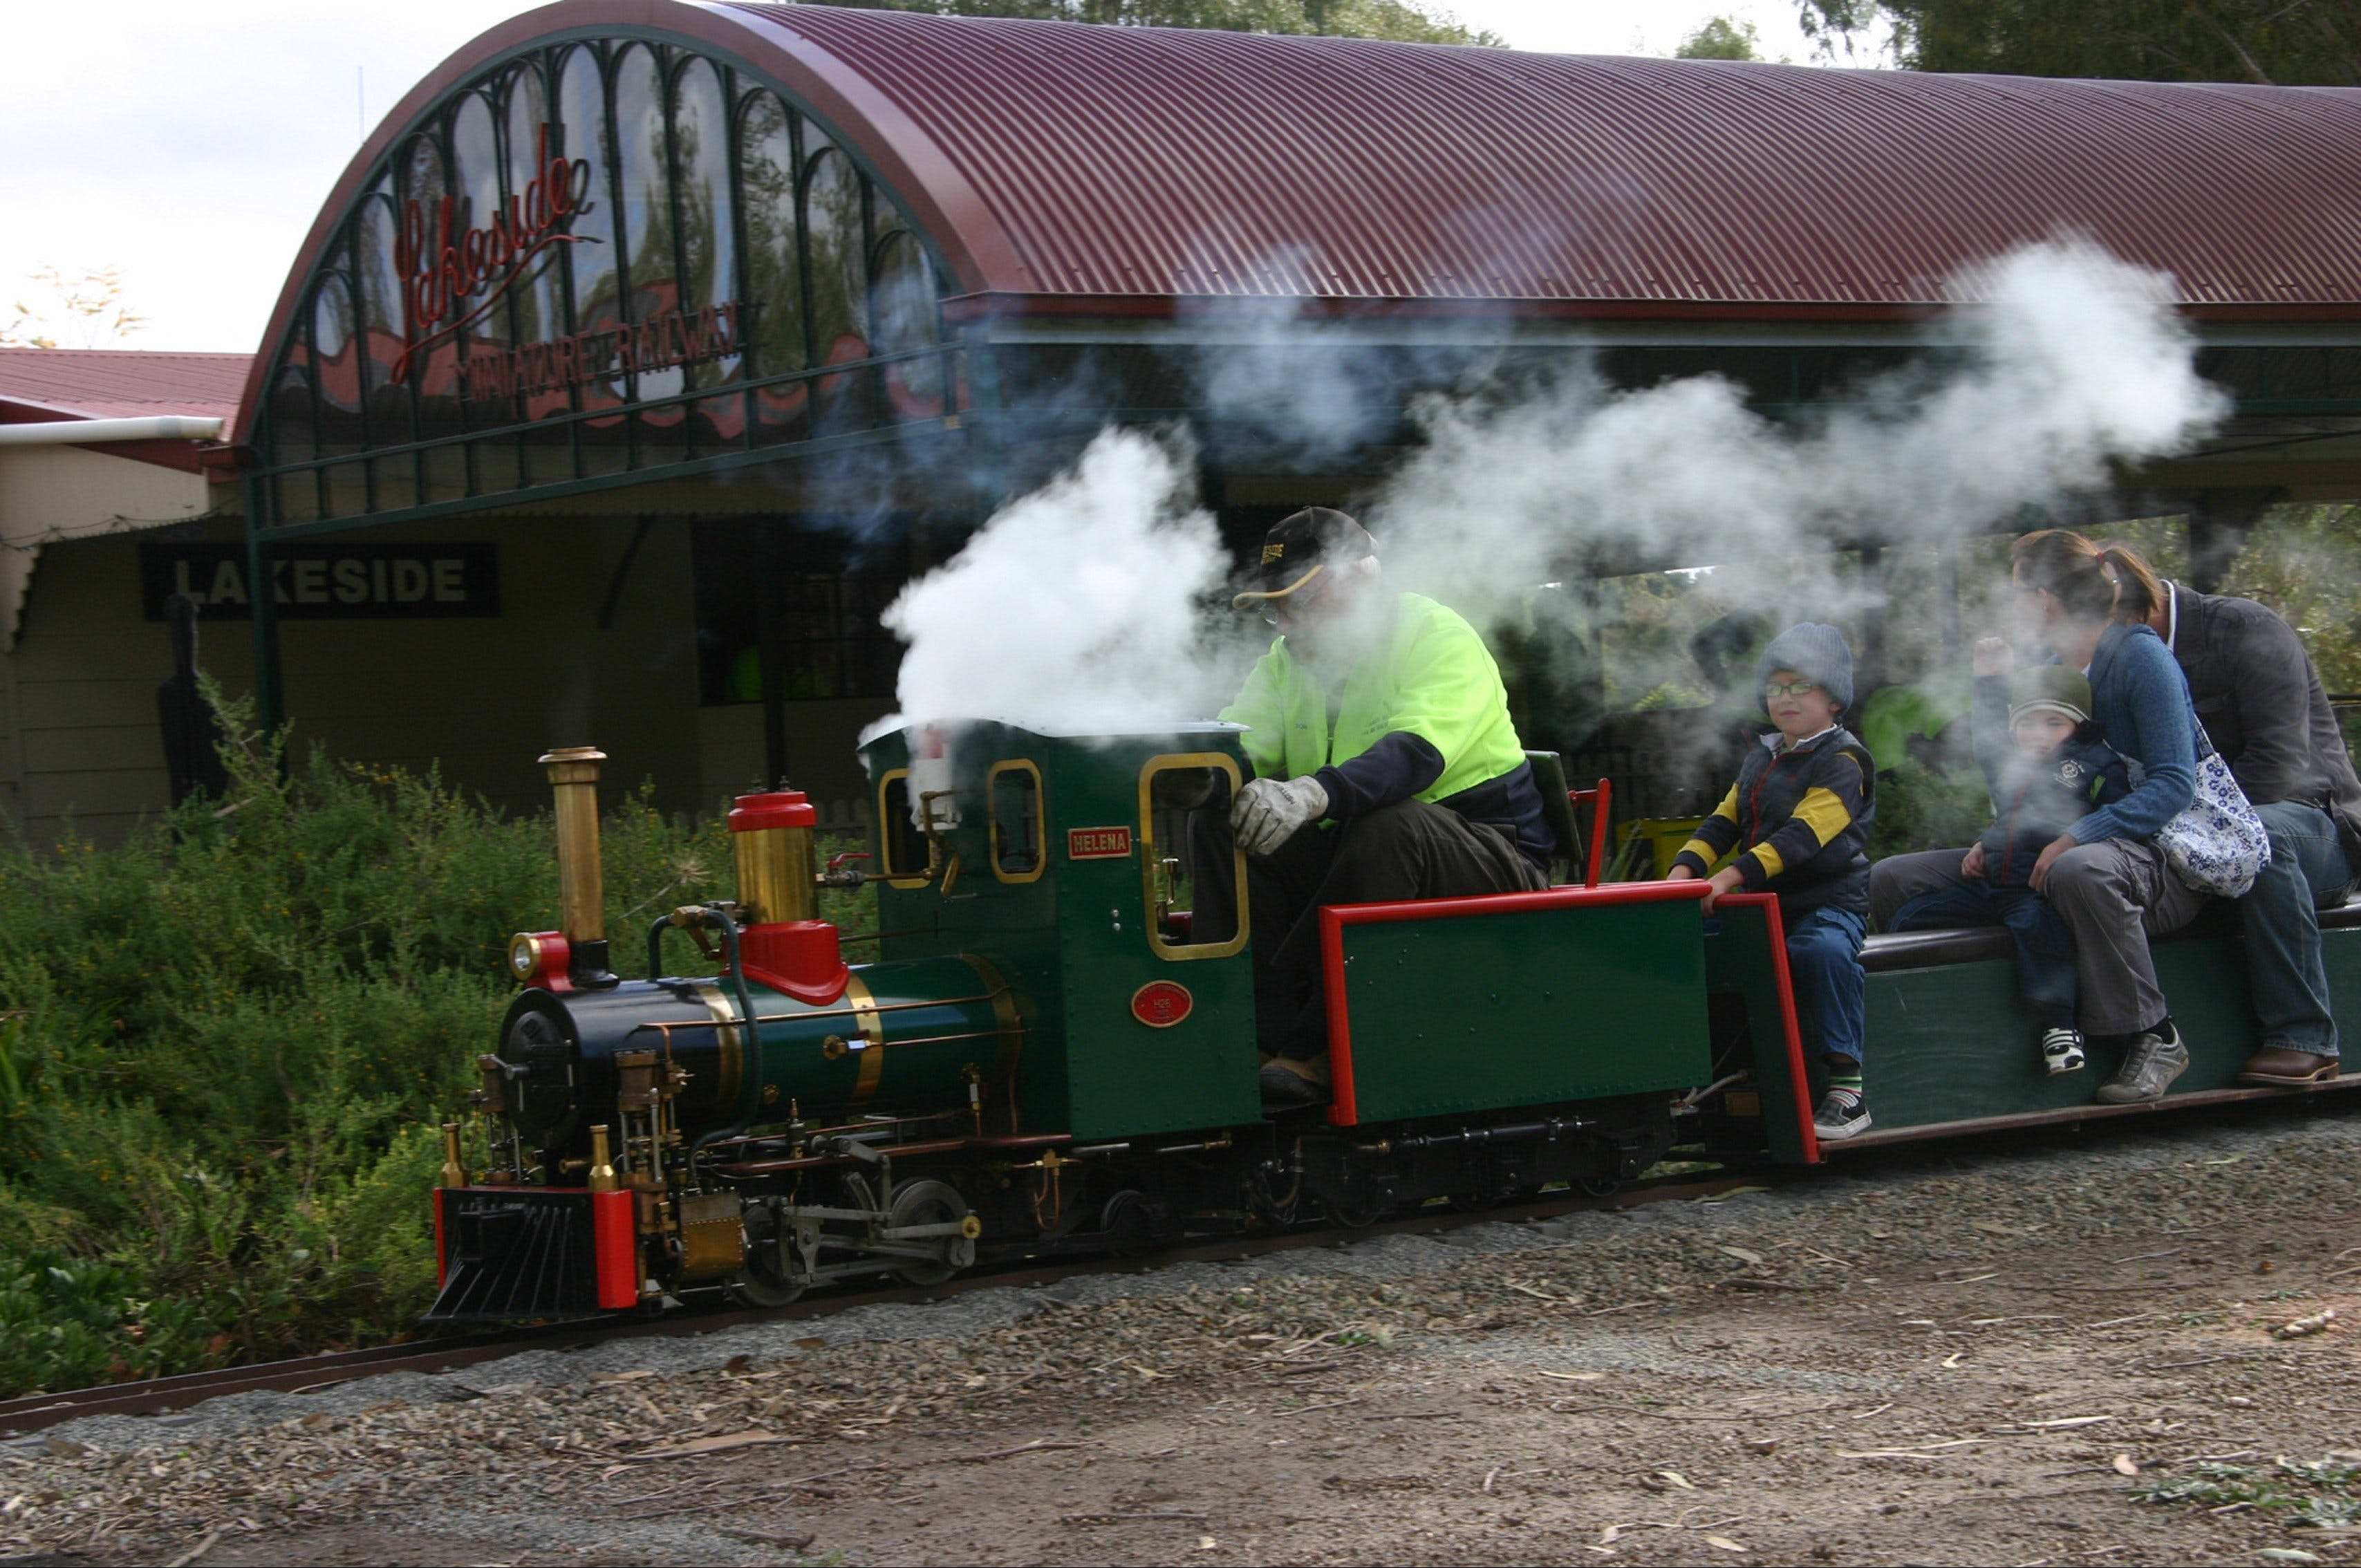 Clare Valley Model Engineers - Attractions